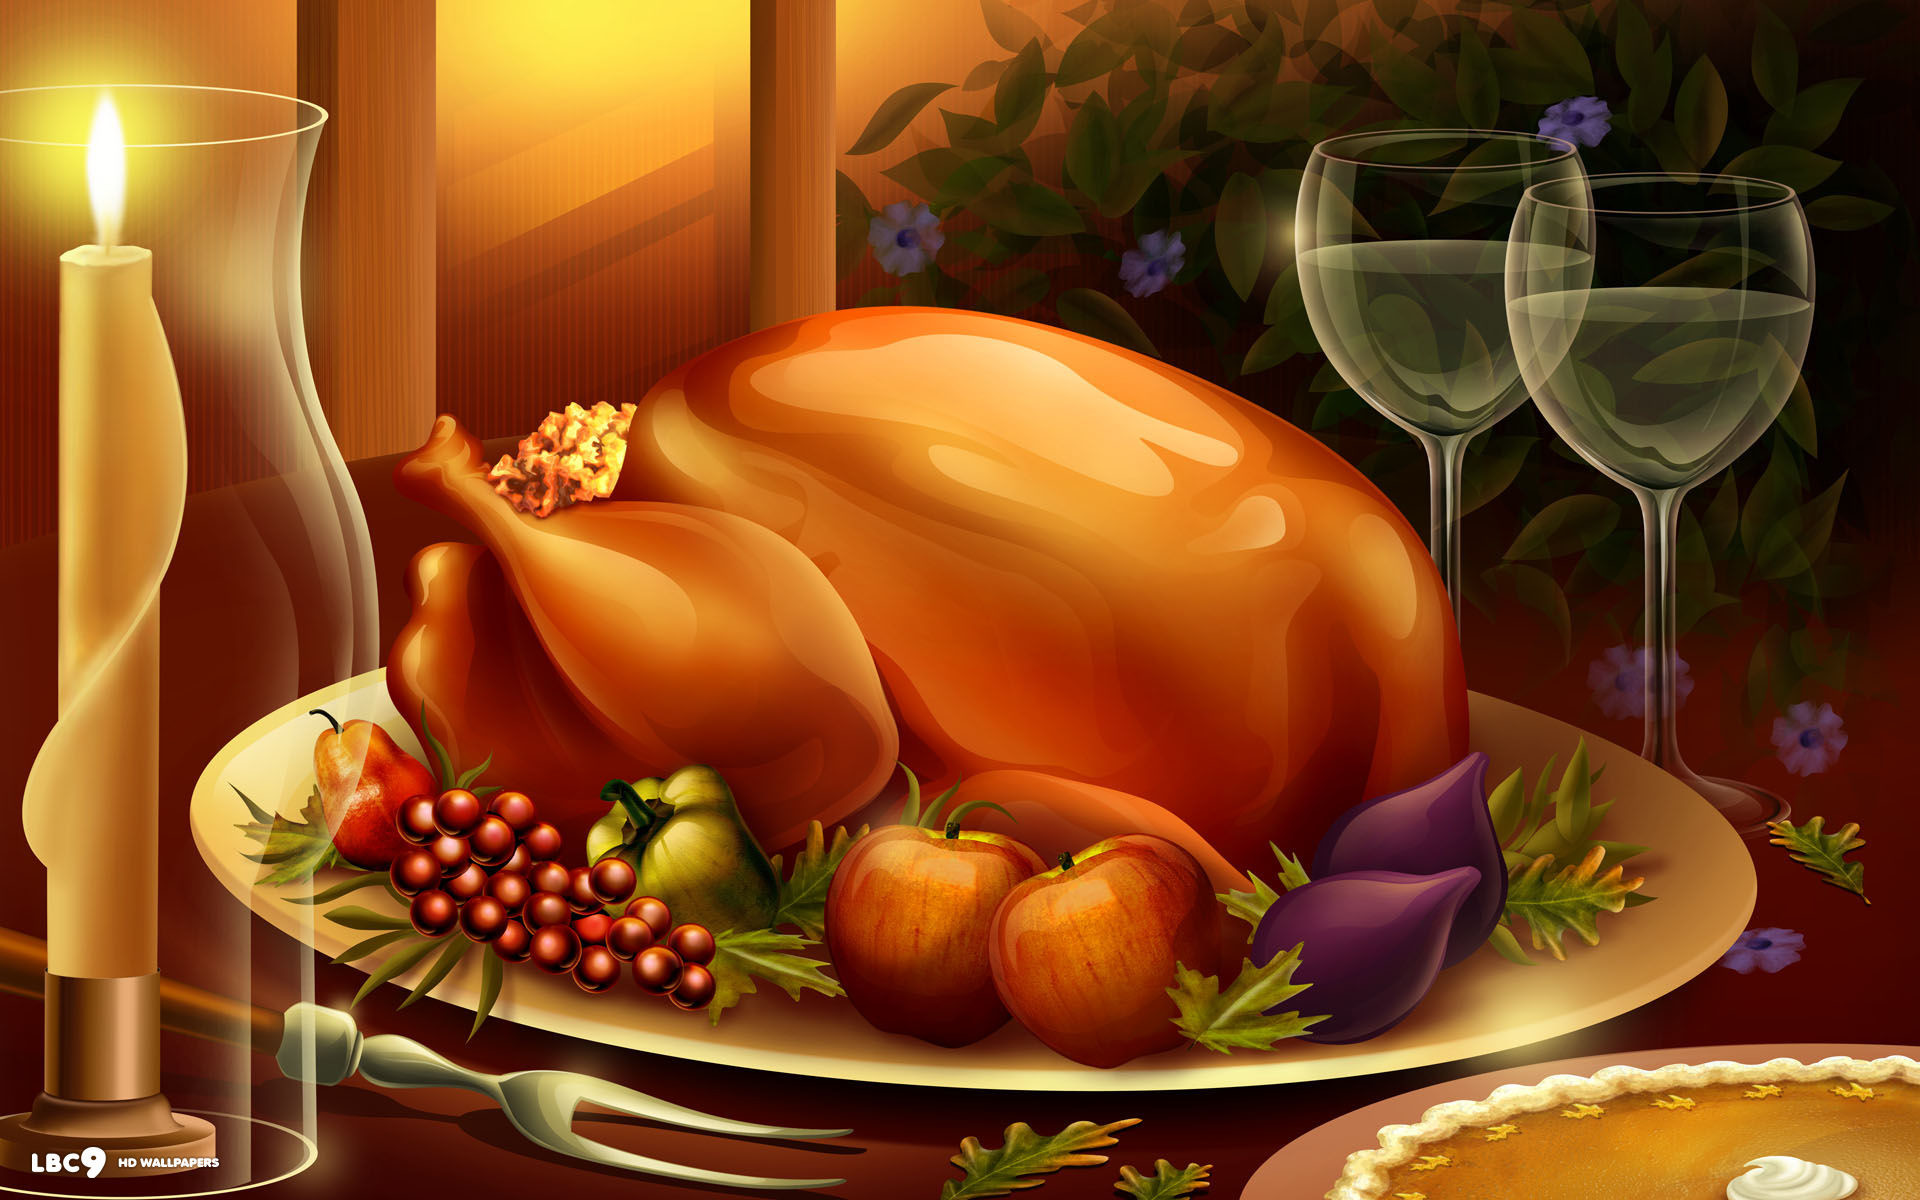 1920x1200 thanksgiving dinner meal large roasted turkey food candles wine pie holiday  desktop wallpaper